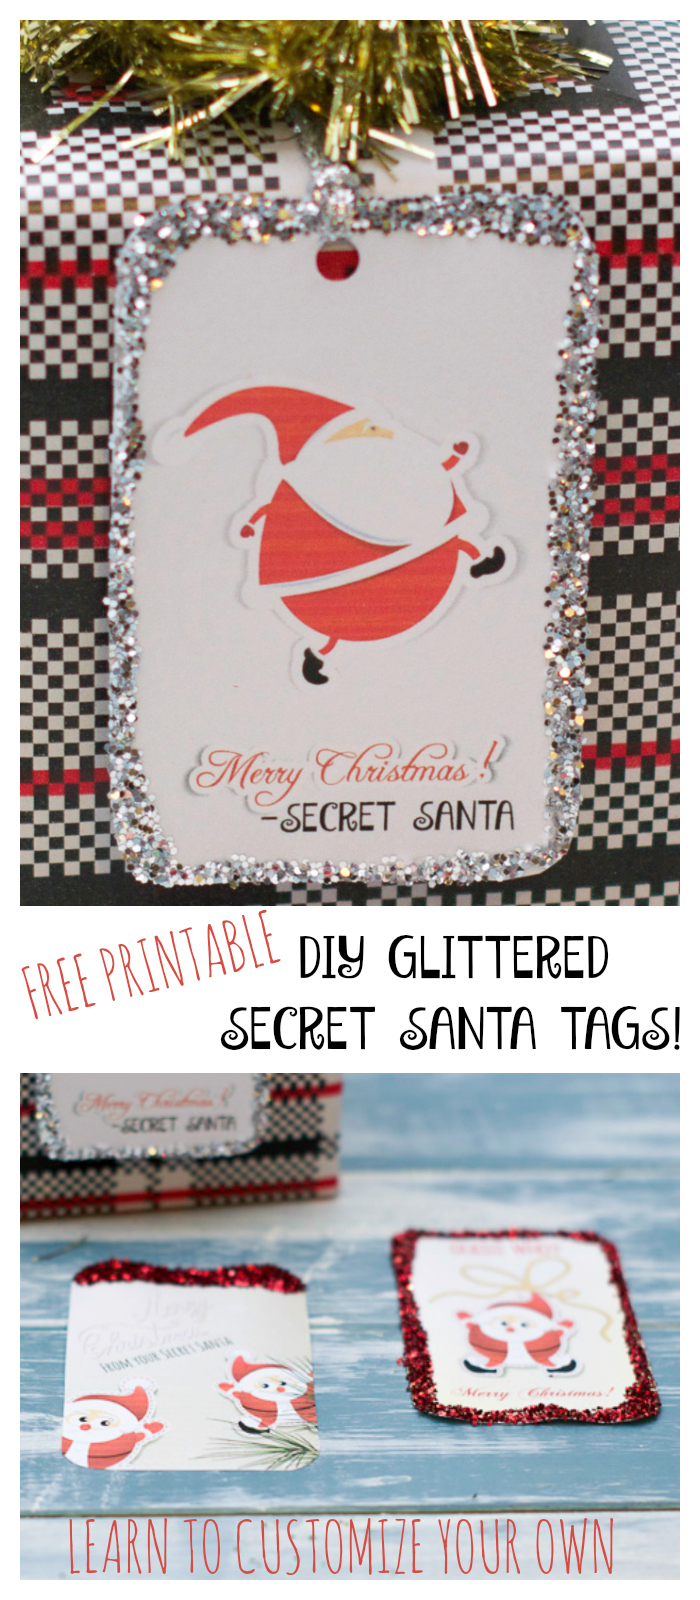 DIY Glittered secret santa tags